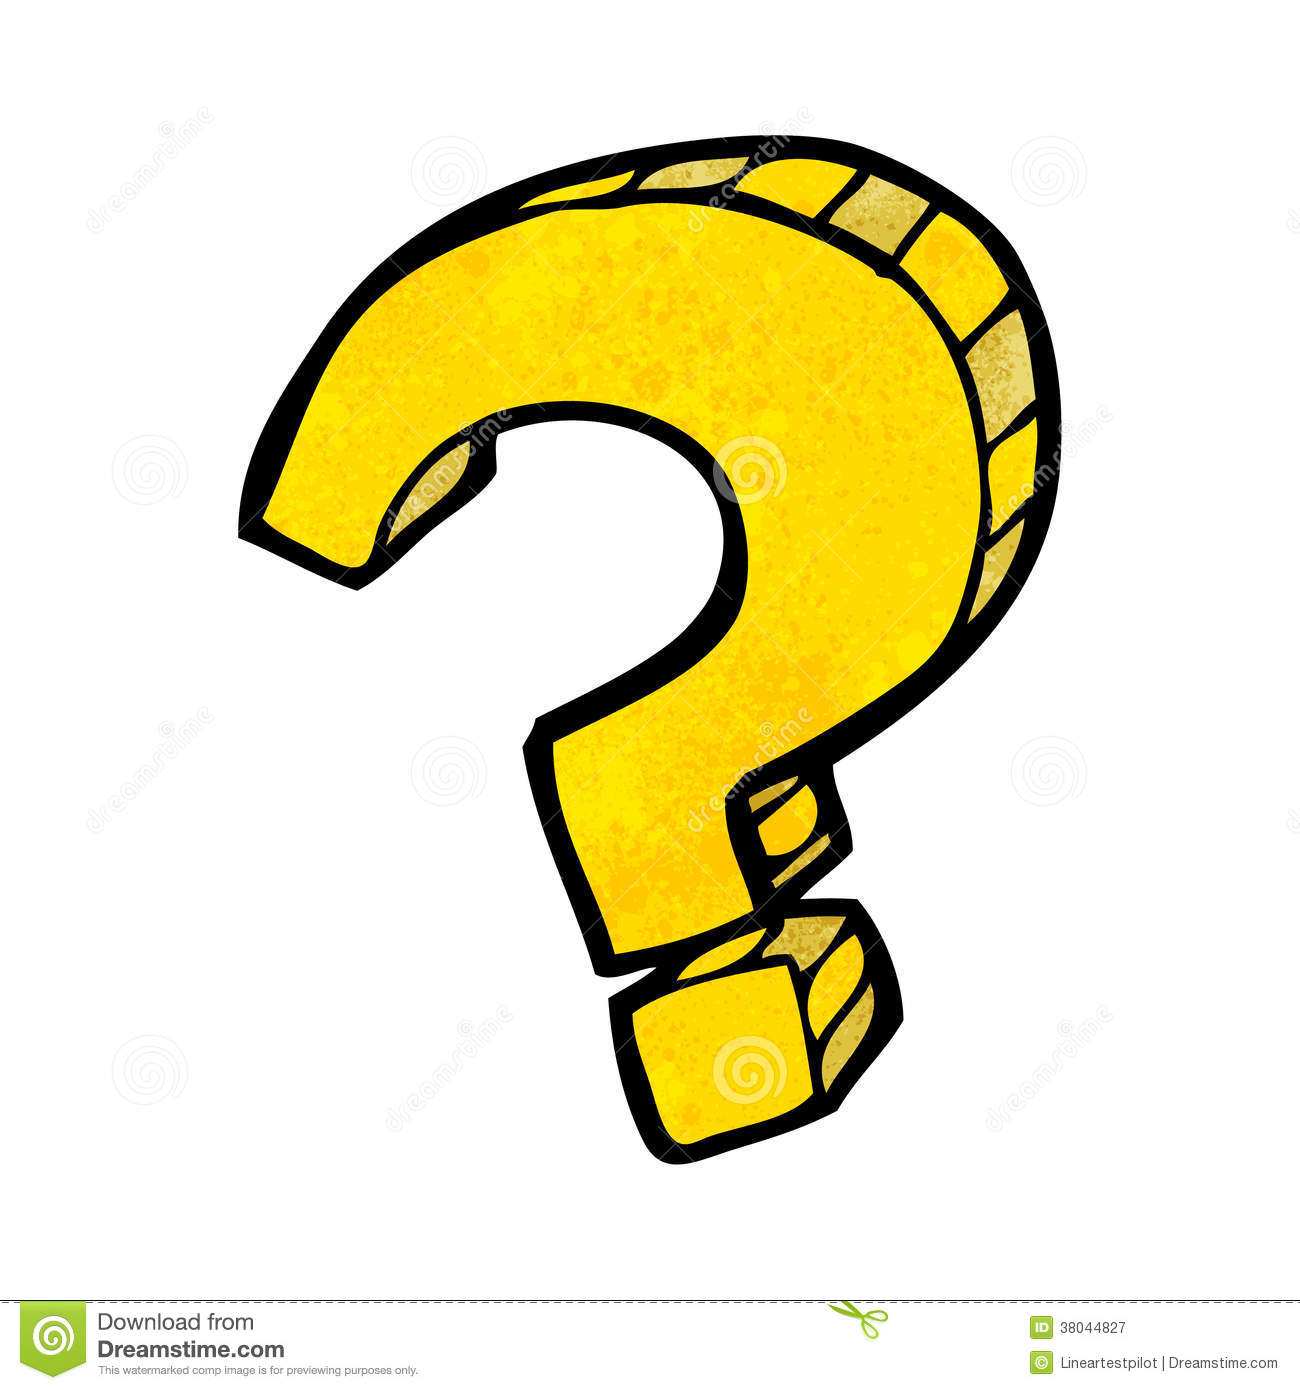 cartoon question mark stock vector illustration of question mark clip art images free question mark clipart clear background